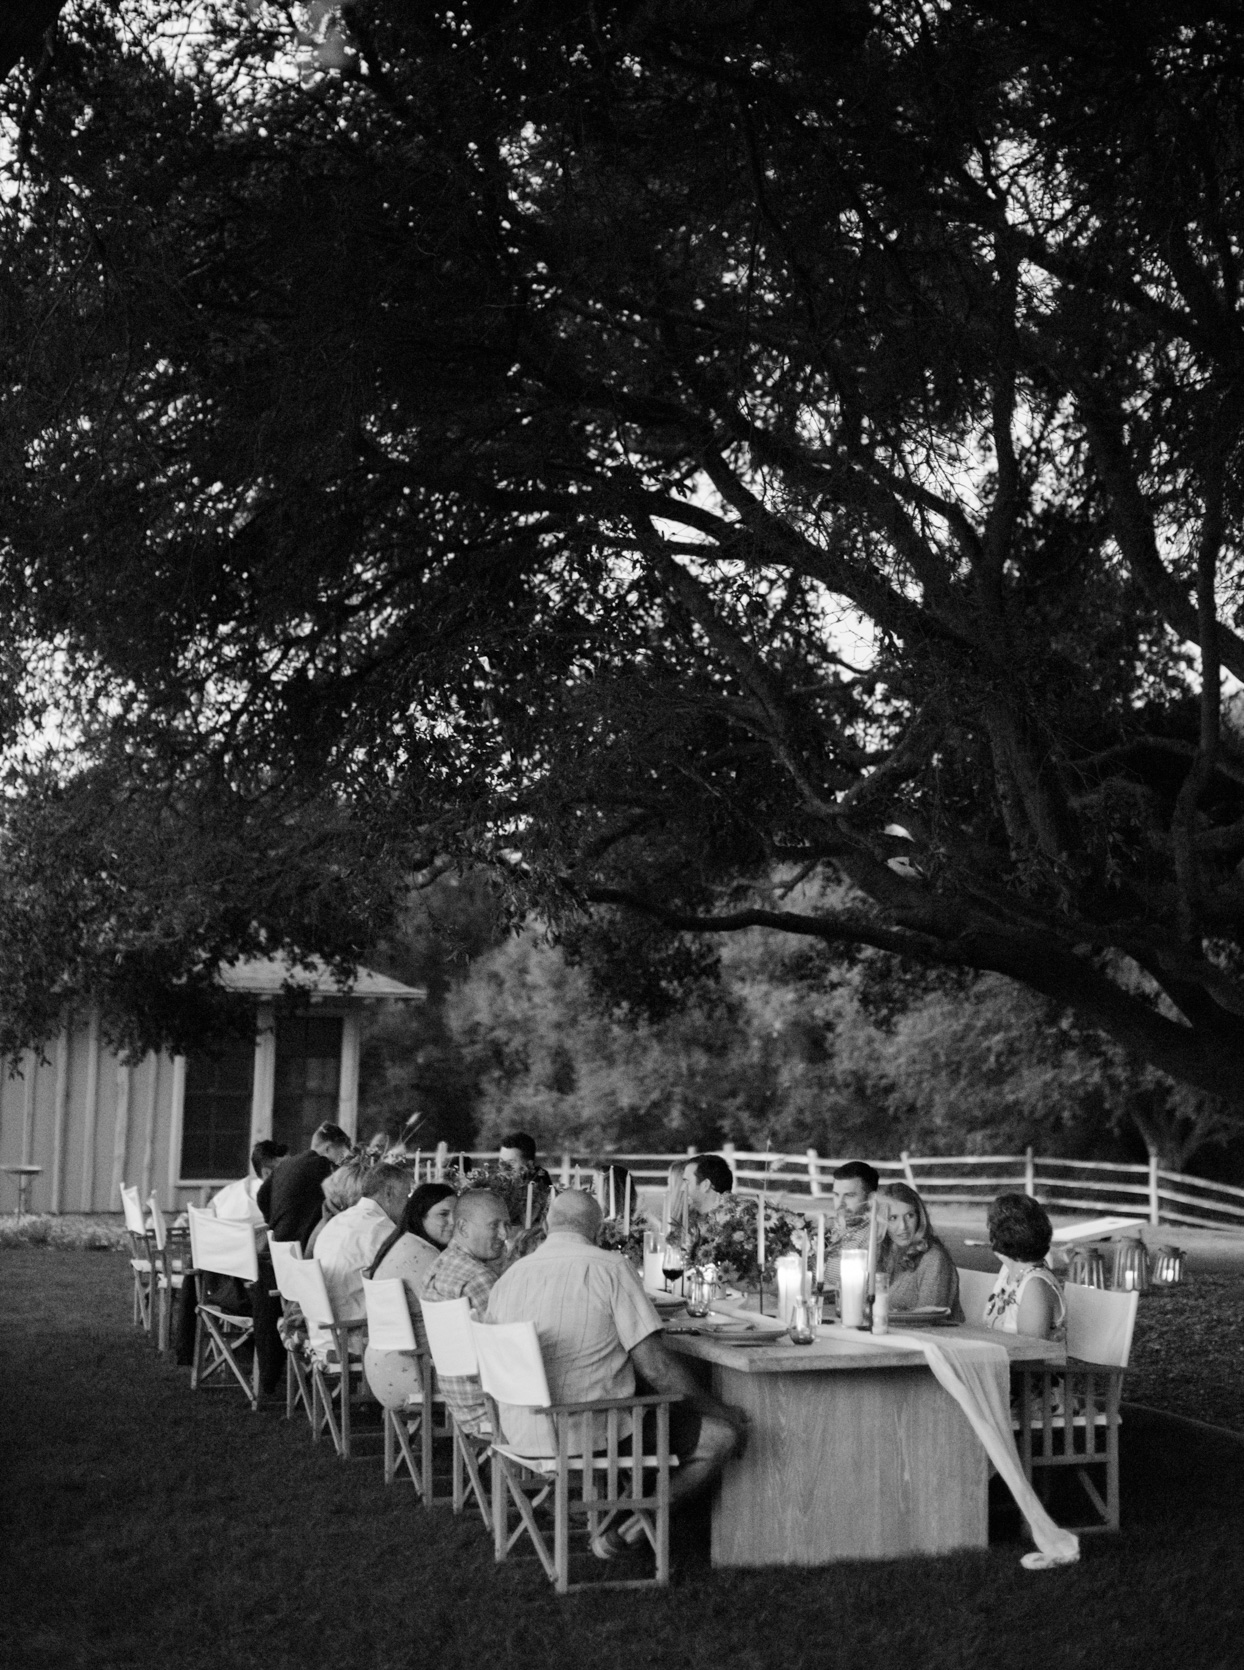 family sitting at wooden table under trees for rehearsal dinner